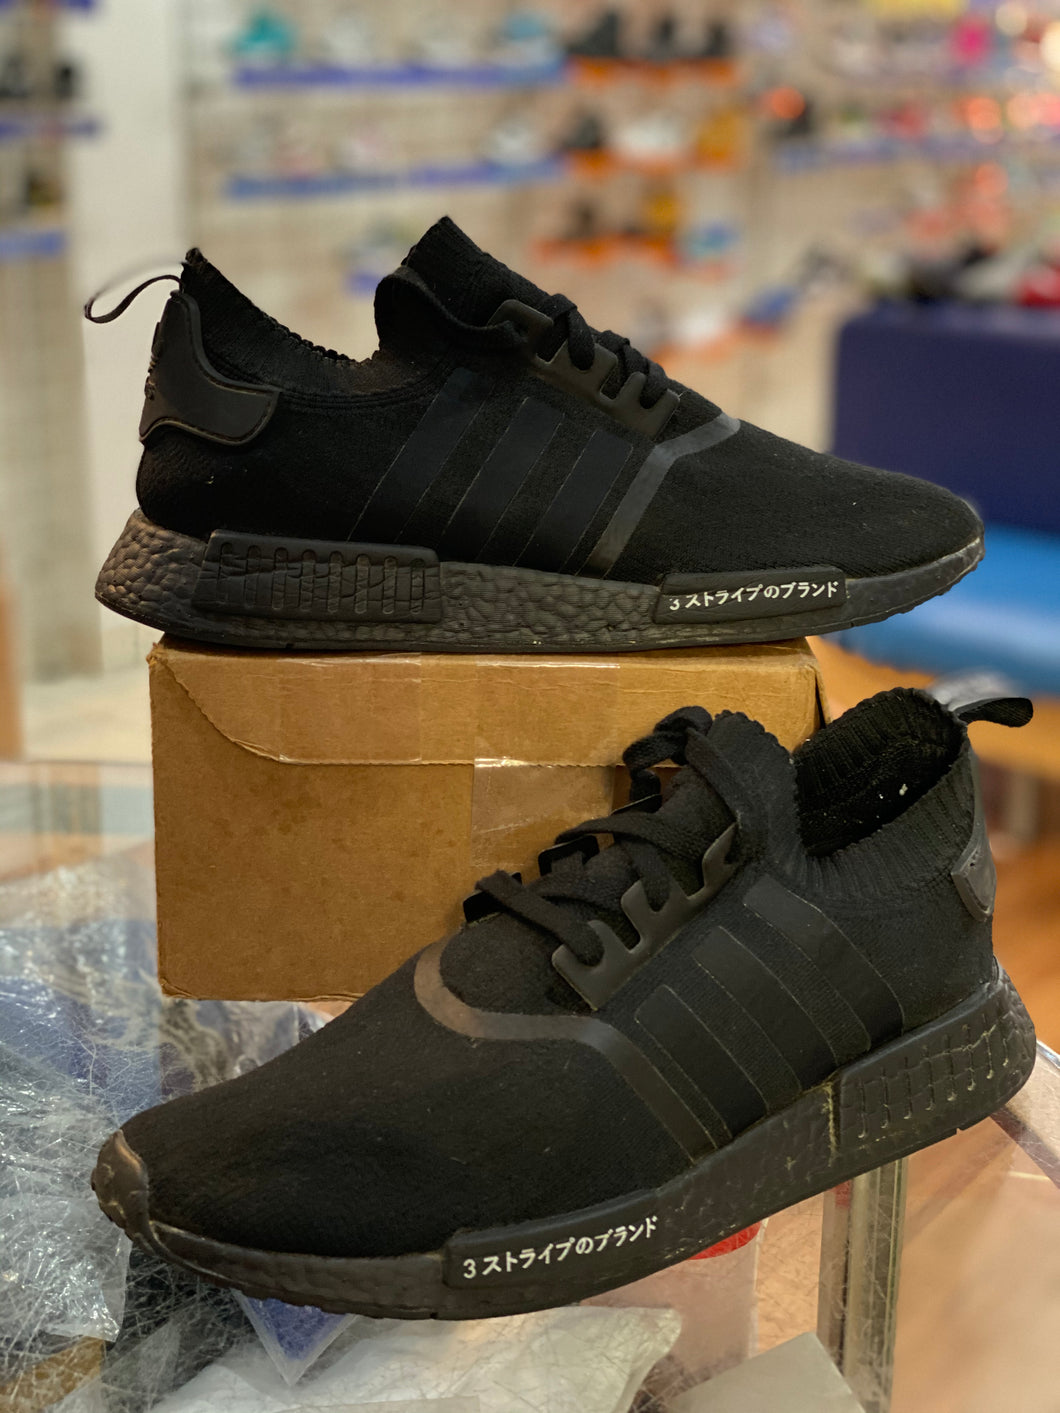 Japan Triple Black Nmd size 12